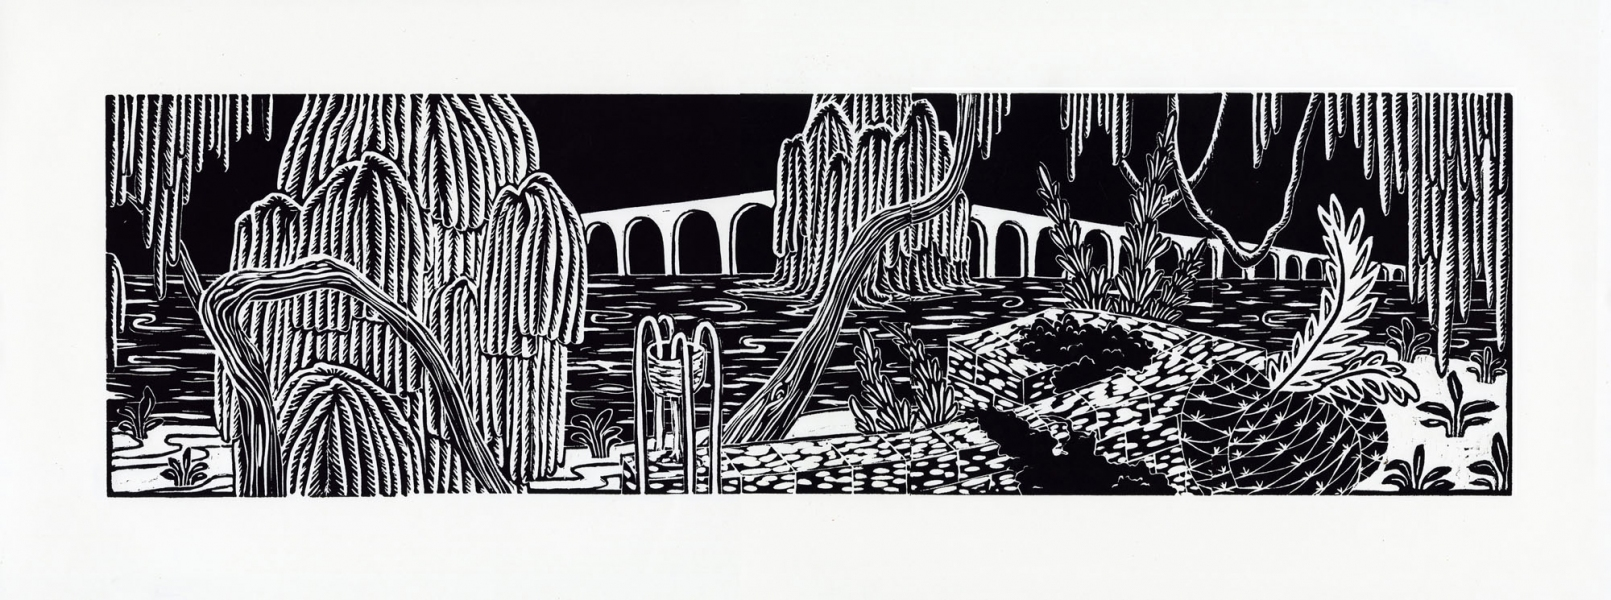 2008 Relief Prints Pump House